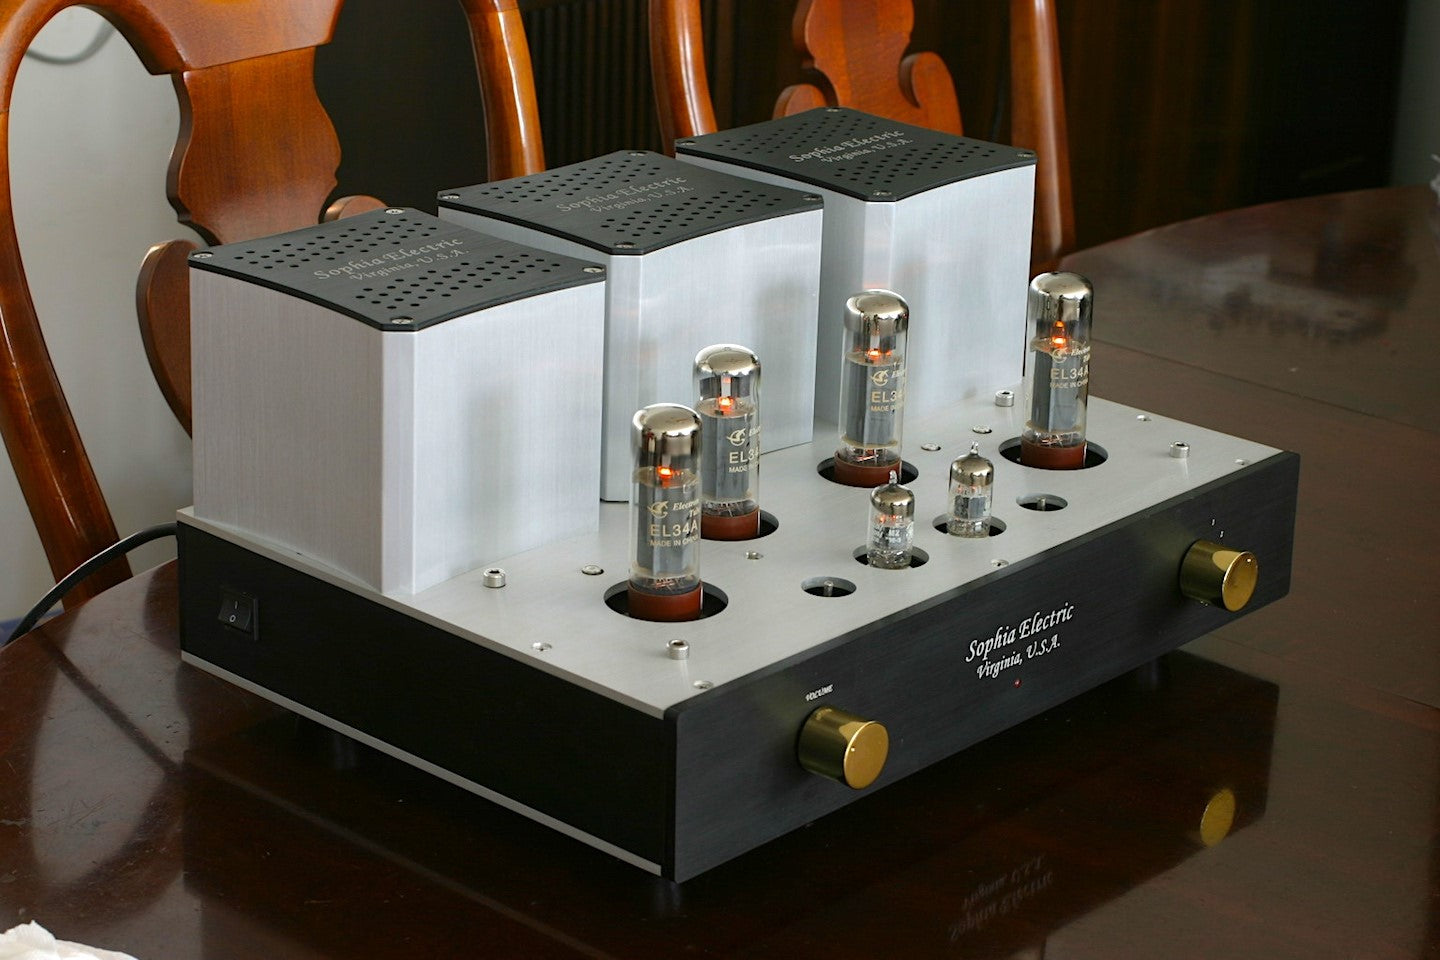 Sophia Electric Magic 126S-03 Dual-Mono Stereo Integrated Amplifier